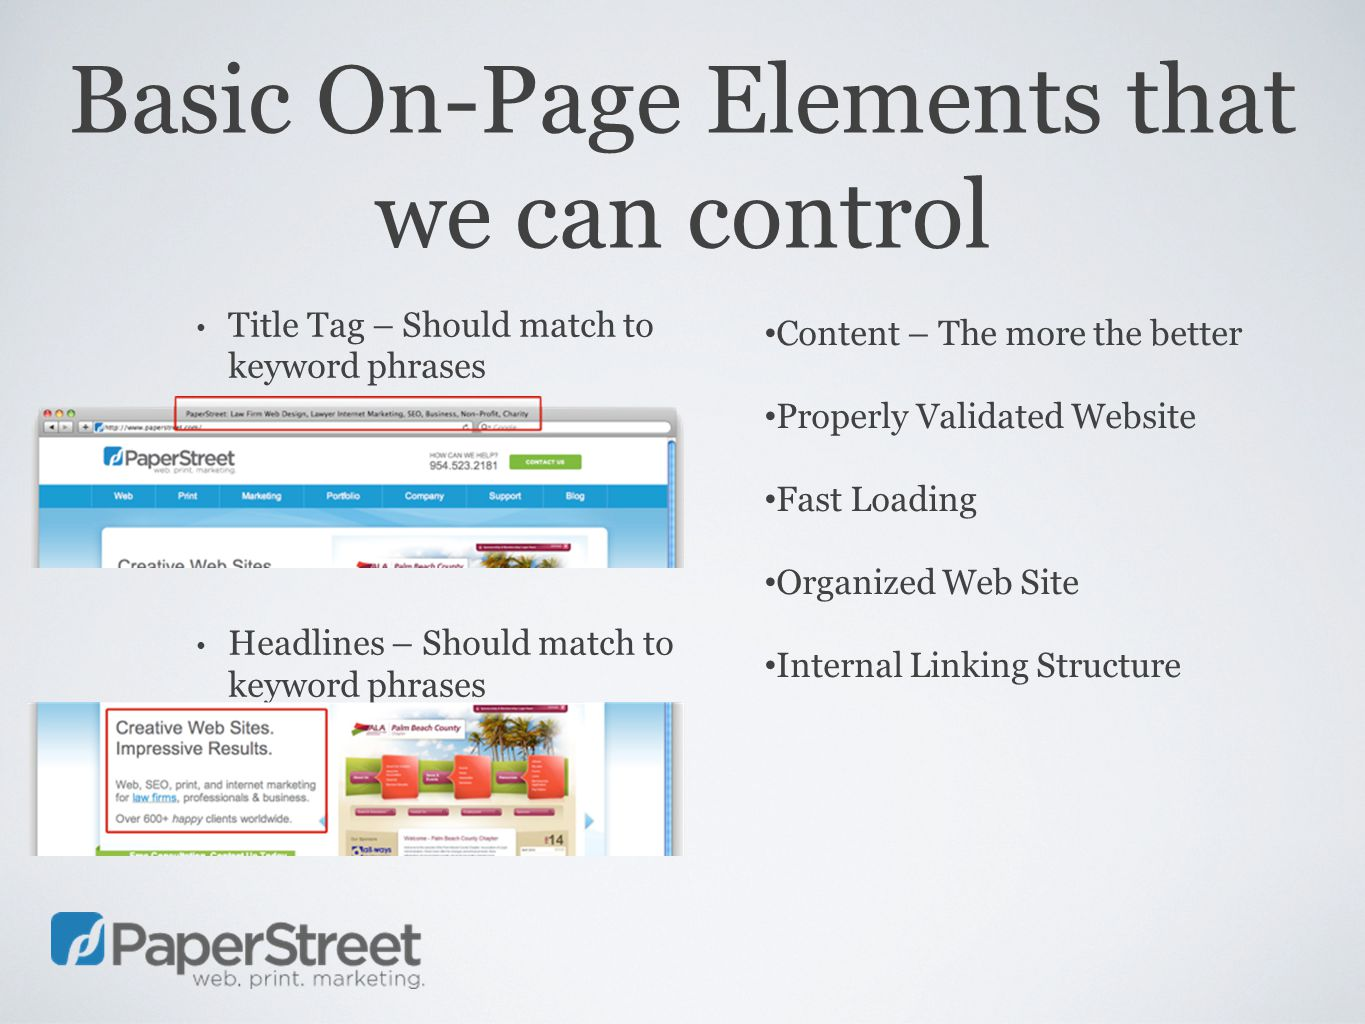 Basic On-Page Elements that we can control Title Tag – Should match to keyword phrases Headlines – Should match to keyword phrases Content – The more the better Properly Validated Website Fast Loading Organized Web Site Internal Linking Structure